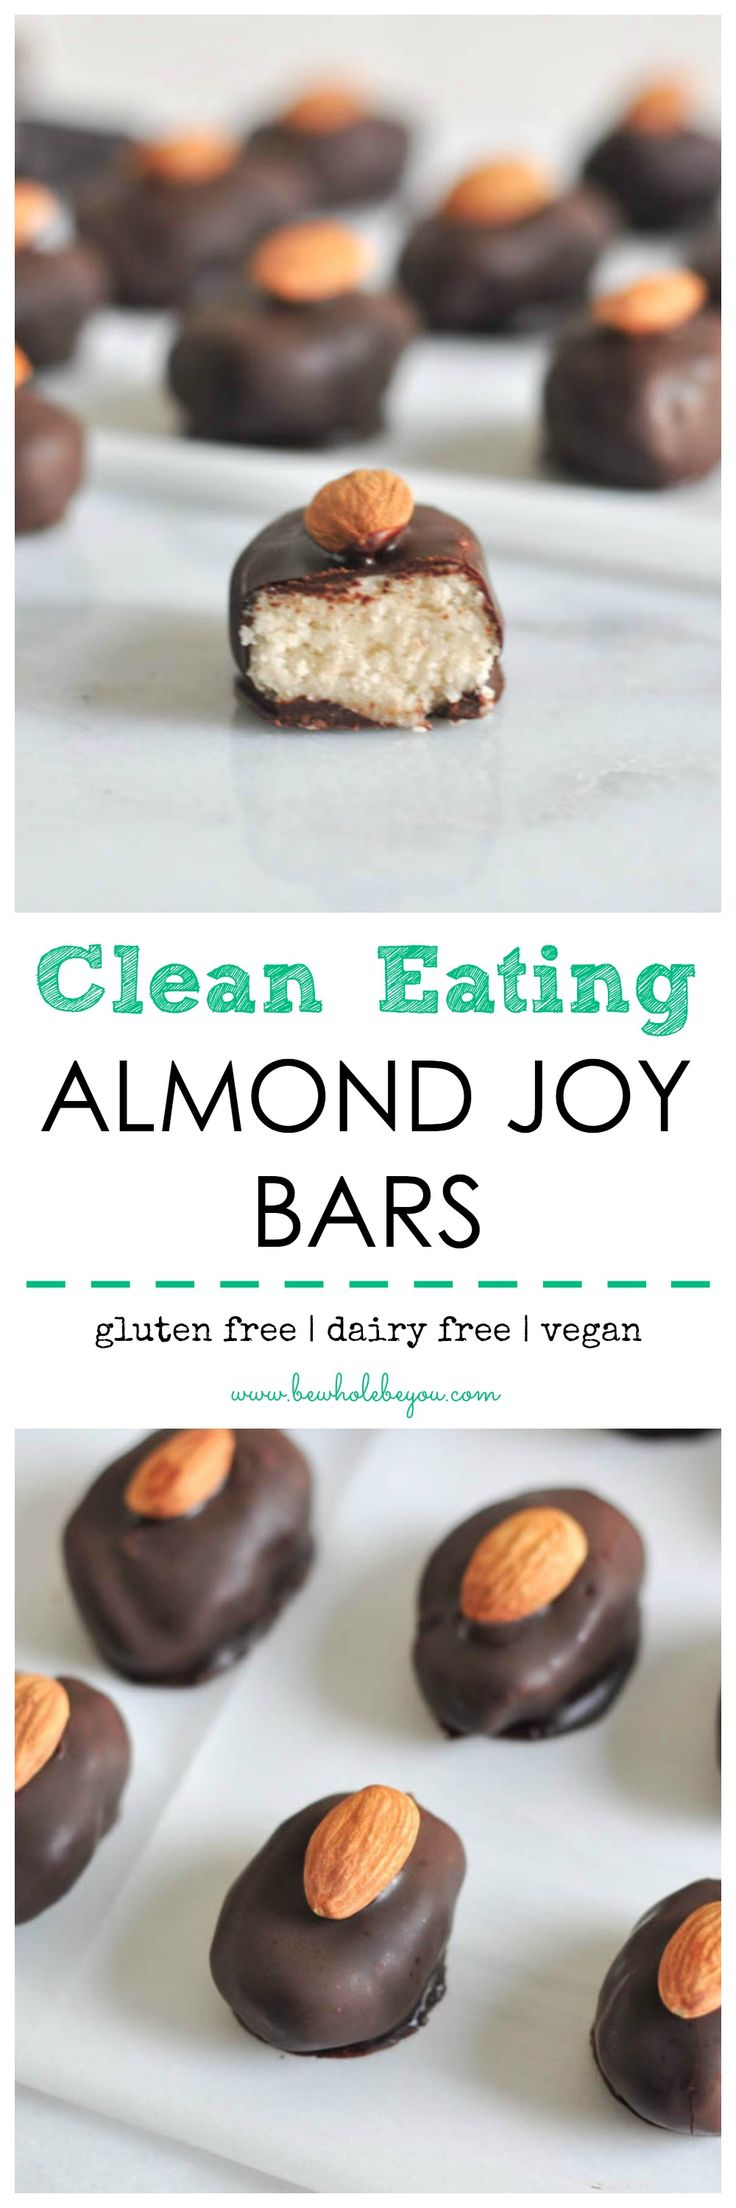 Clean Eating Almond Joy Bars. Be Whole. Be You.